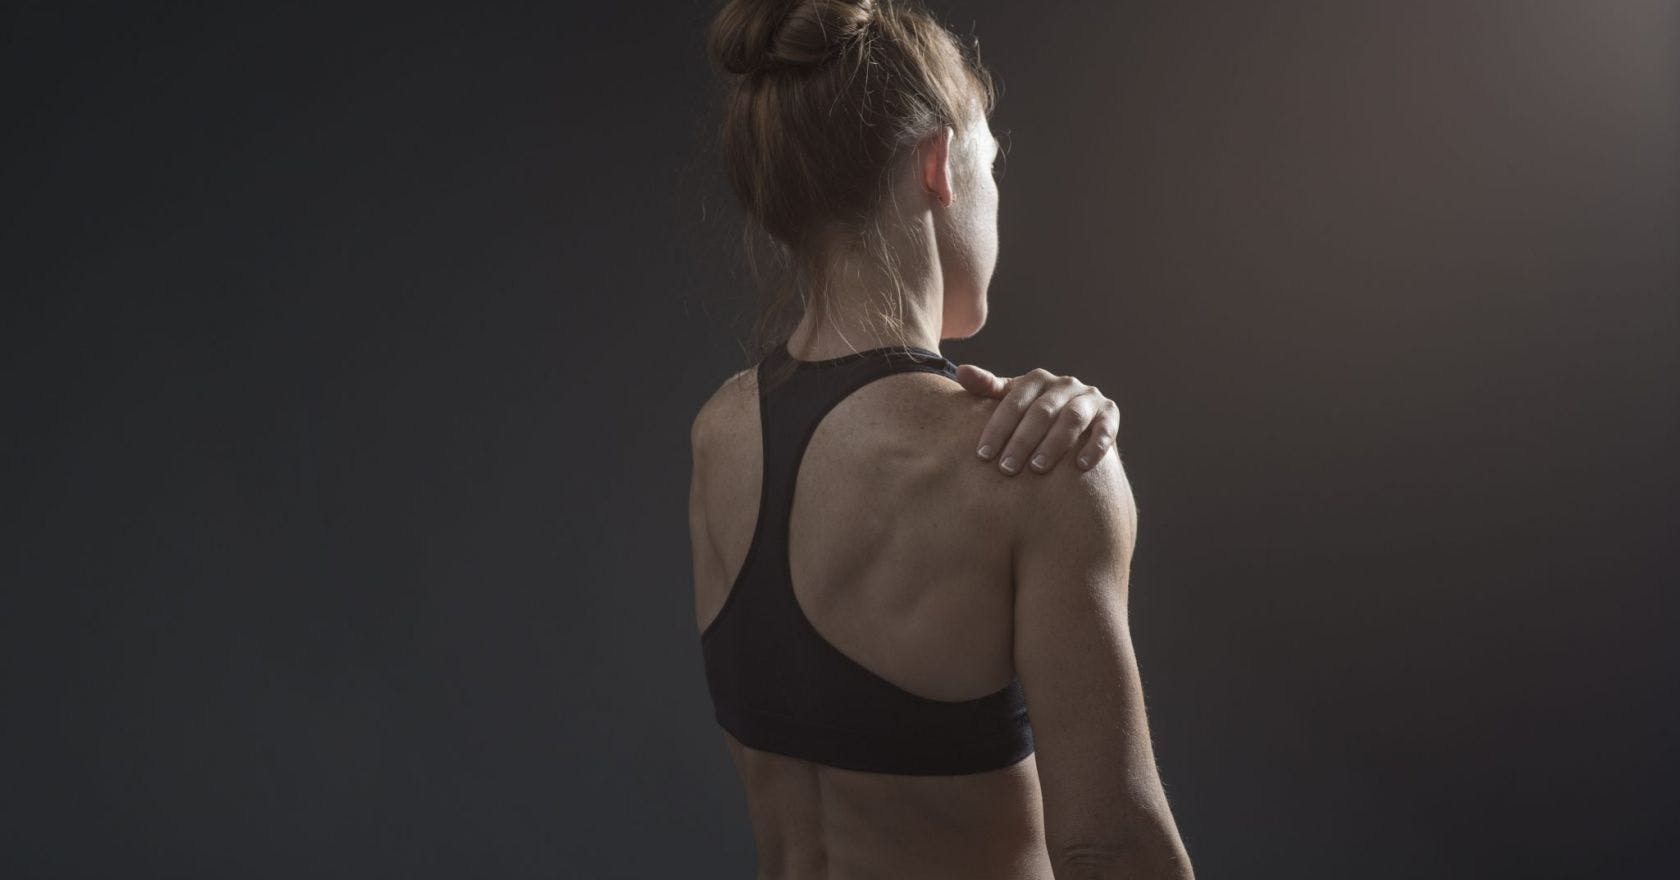 How to get rid of pesky and painful muscle knots